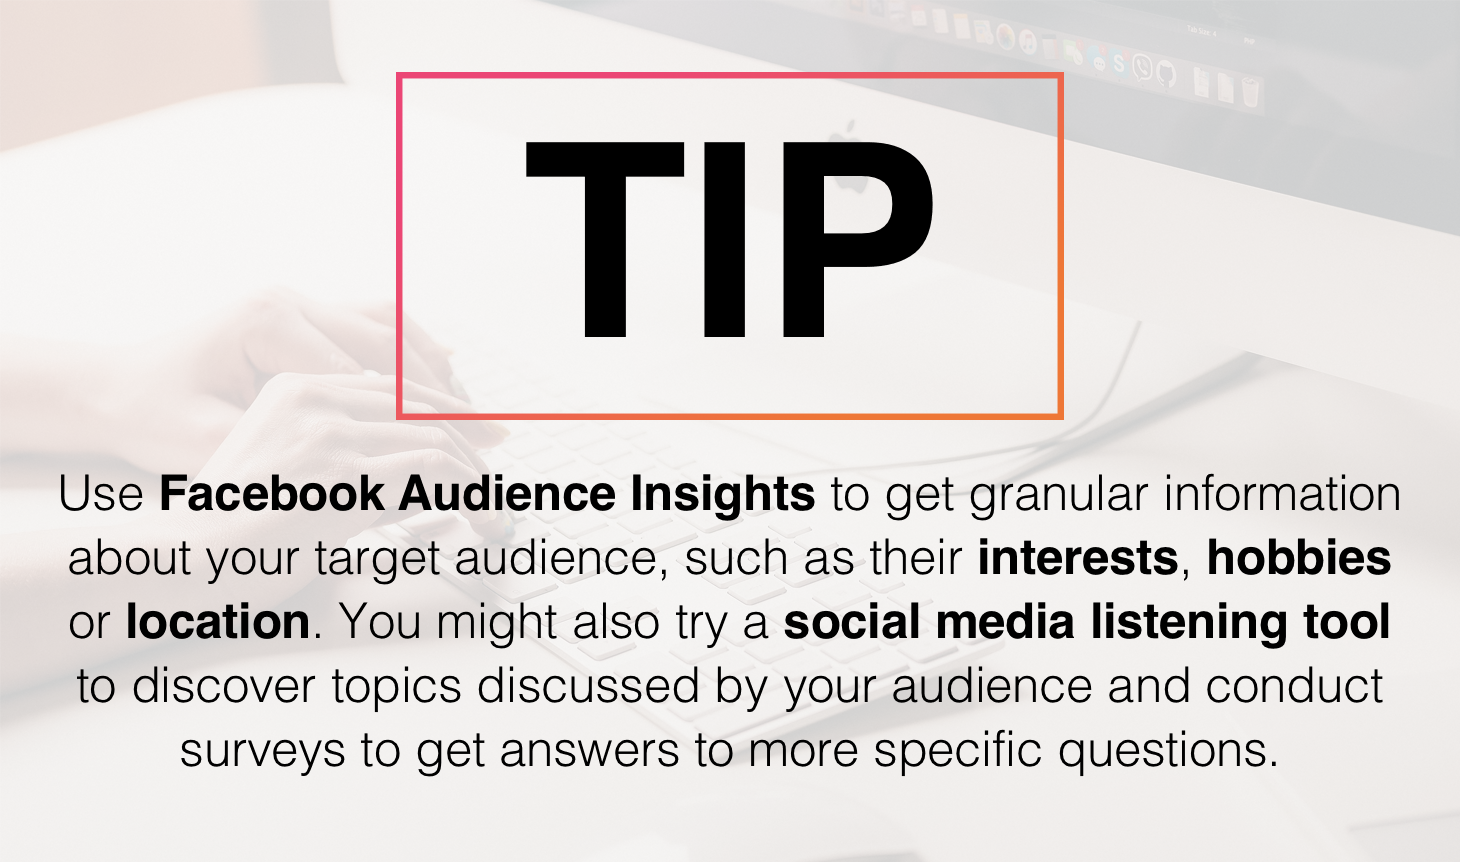 Tip about using Facebook Audience Insights